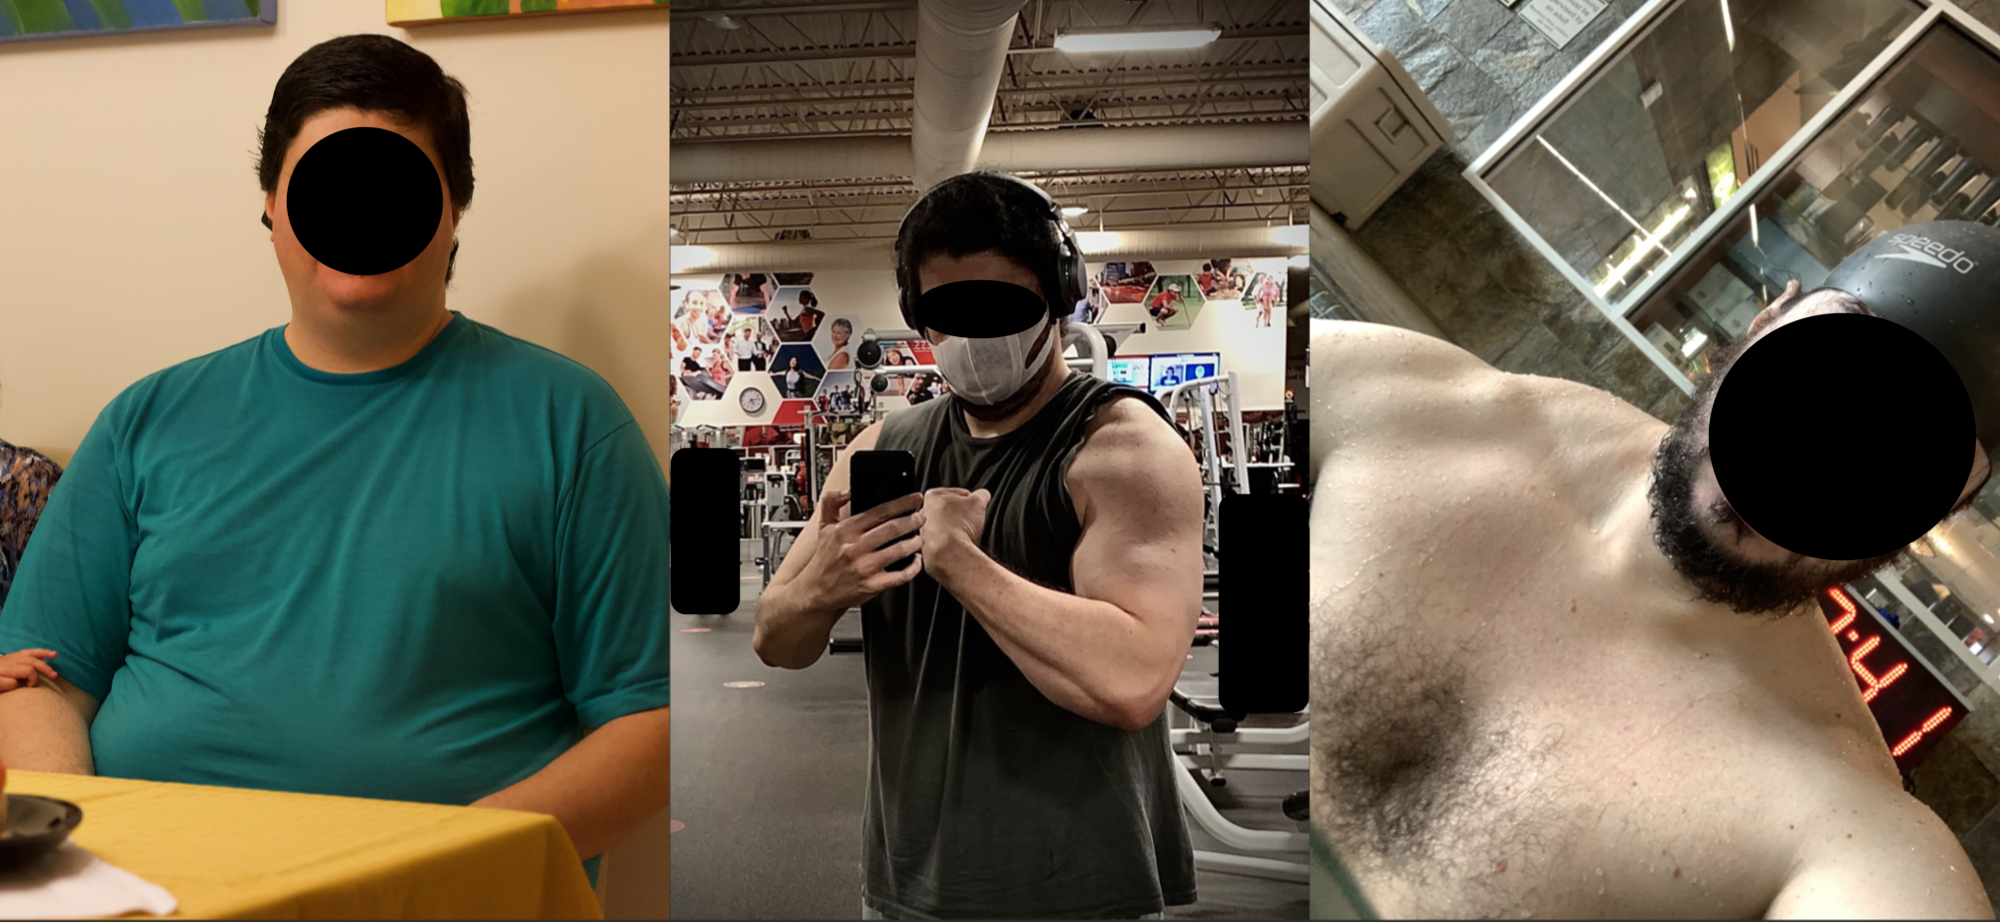 Before and After 110 lbs Fat Loss 6 foot 3 Male 325 lbs to 215 lbs